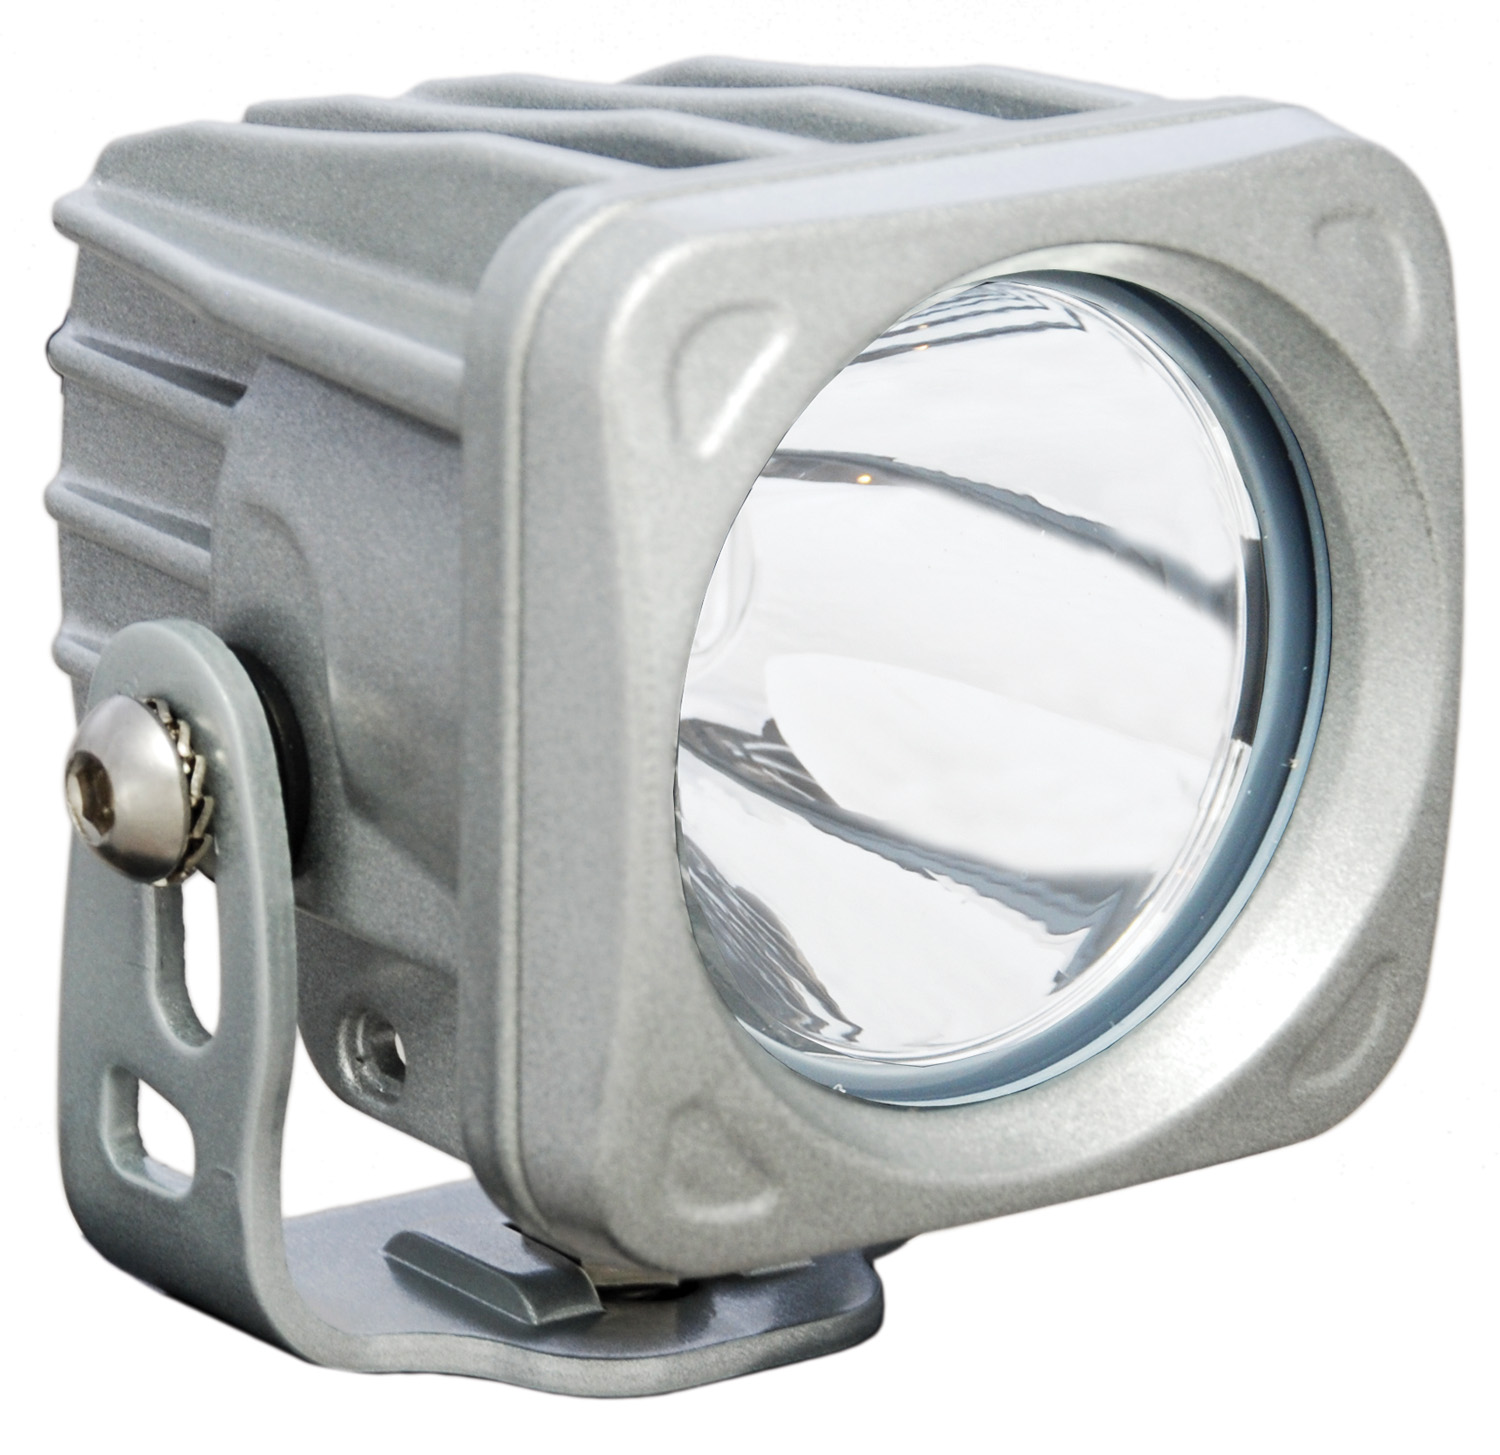 OPTIMUS SQUARE SILVER 1 10W LED 10° NARROW